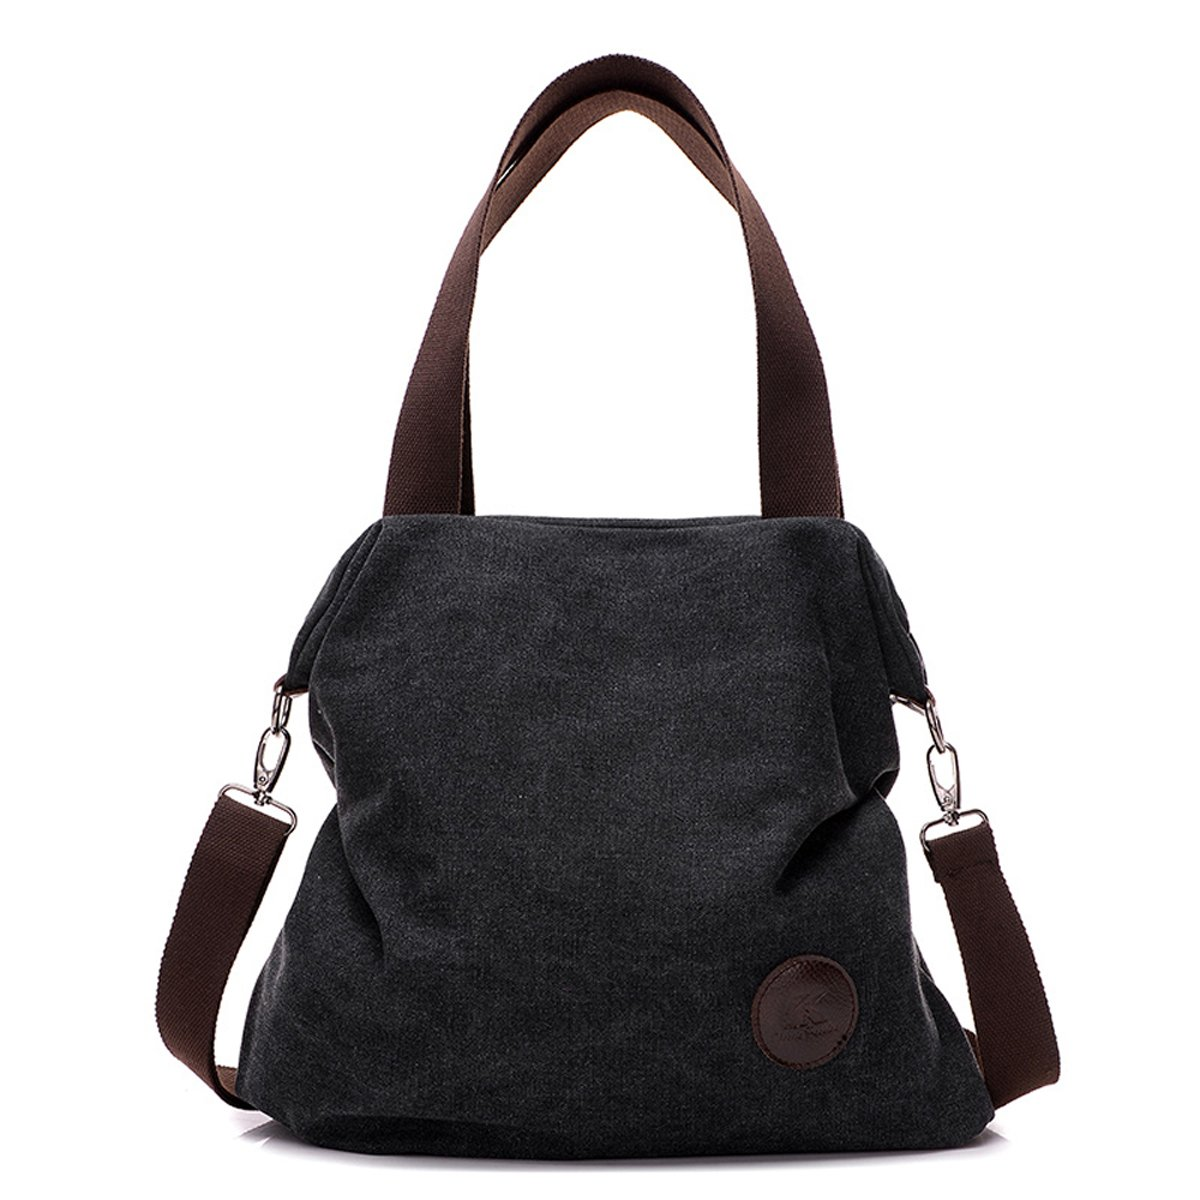 812403b25ae1 Amazon.com  Shoulder Bag Crossbody bag Mid Size Handbag Canvas Tote Bag For  Women Girls Casual Travel Messenger Bag Brown Black  Shoes